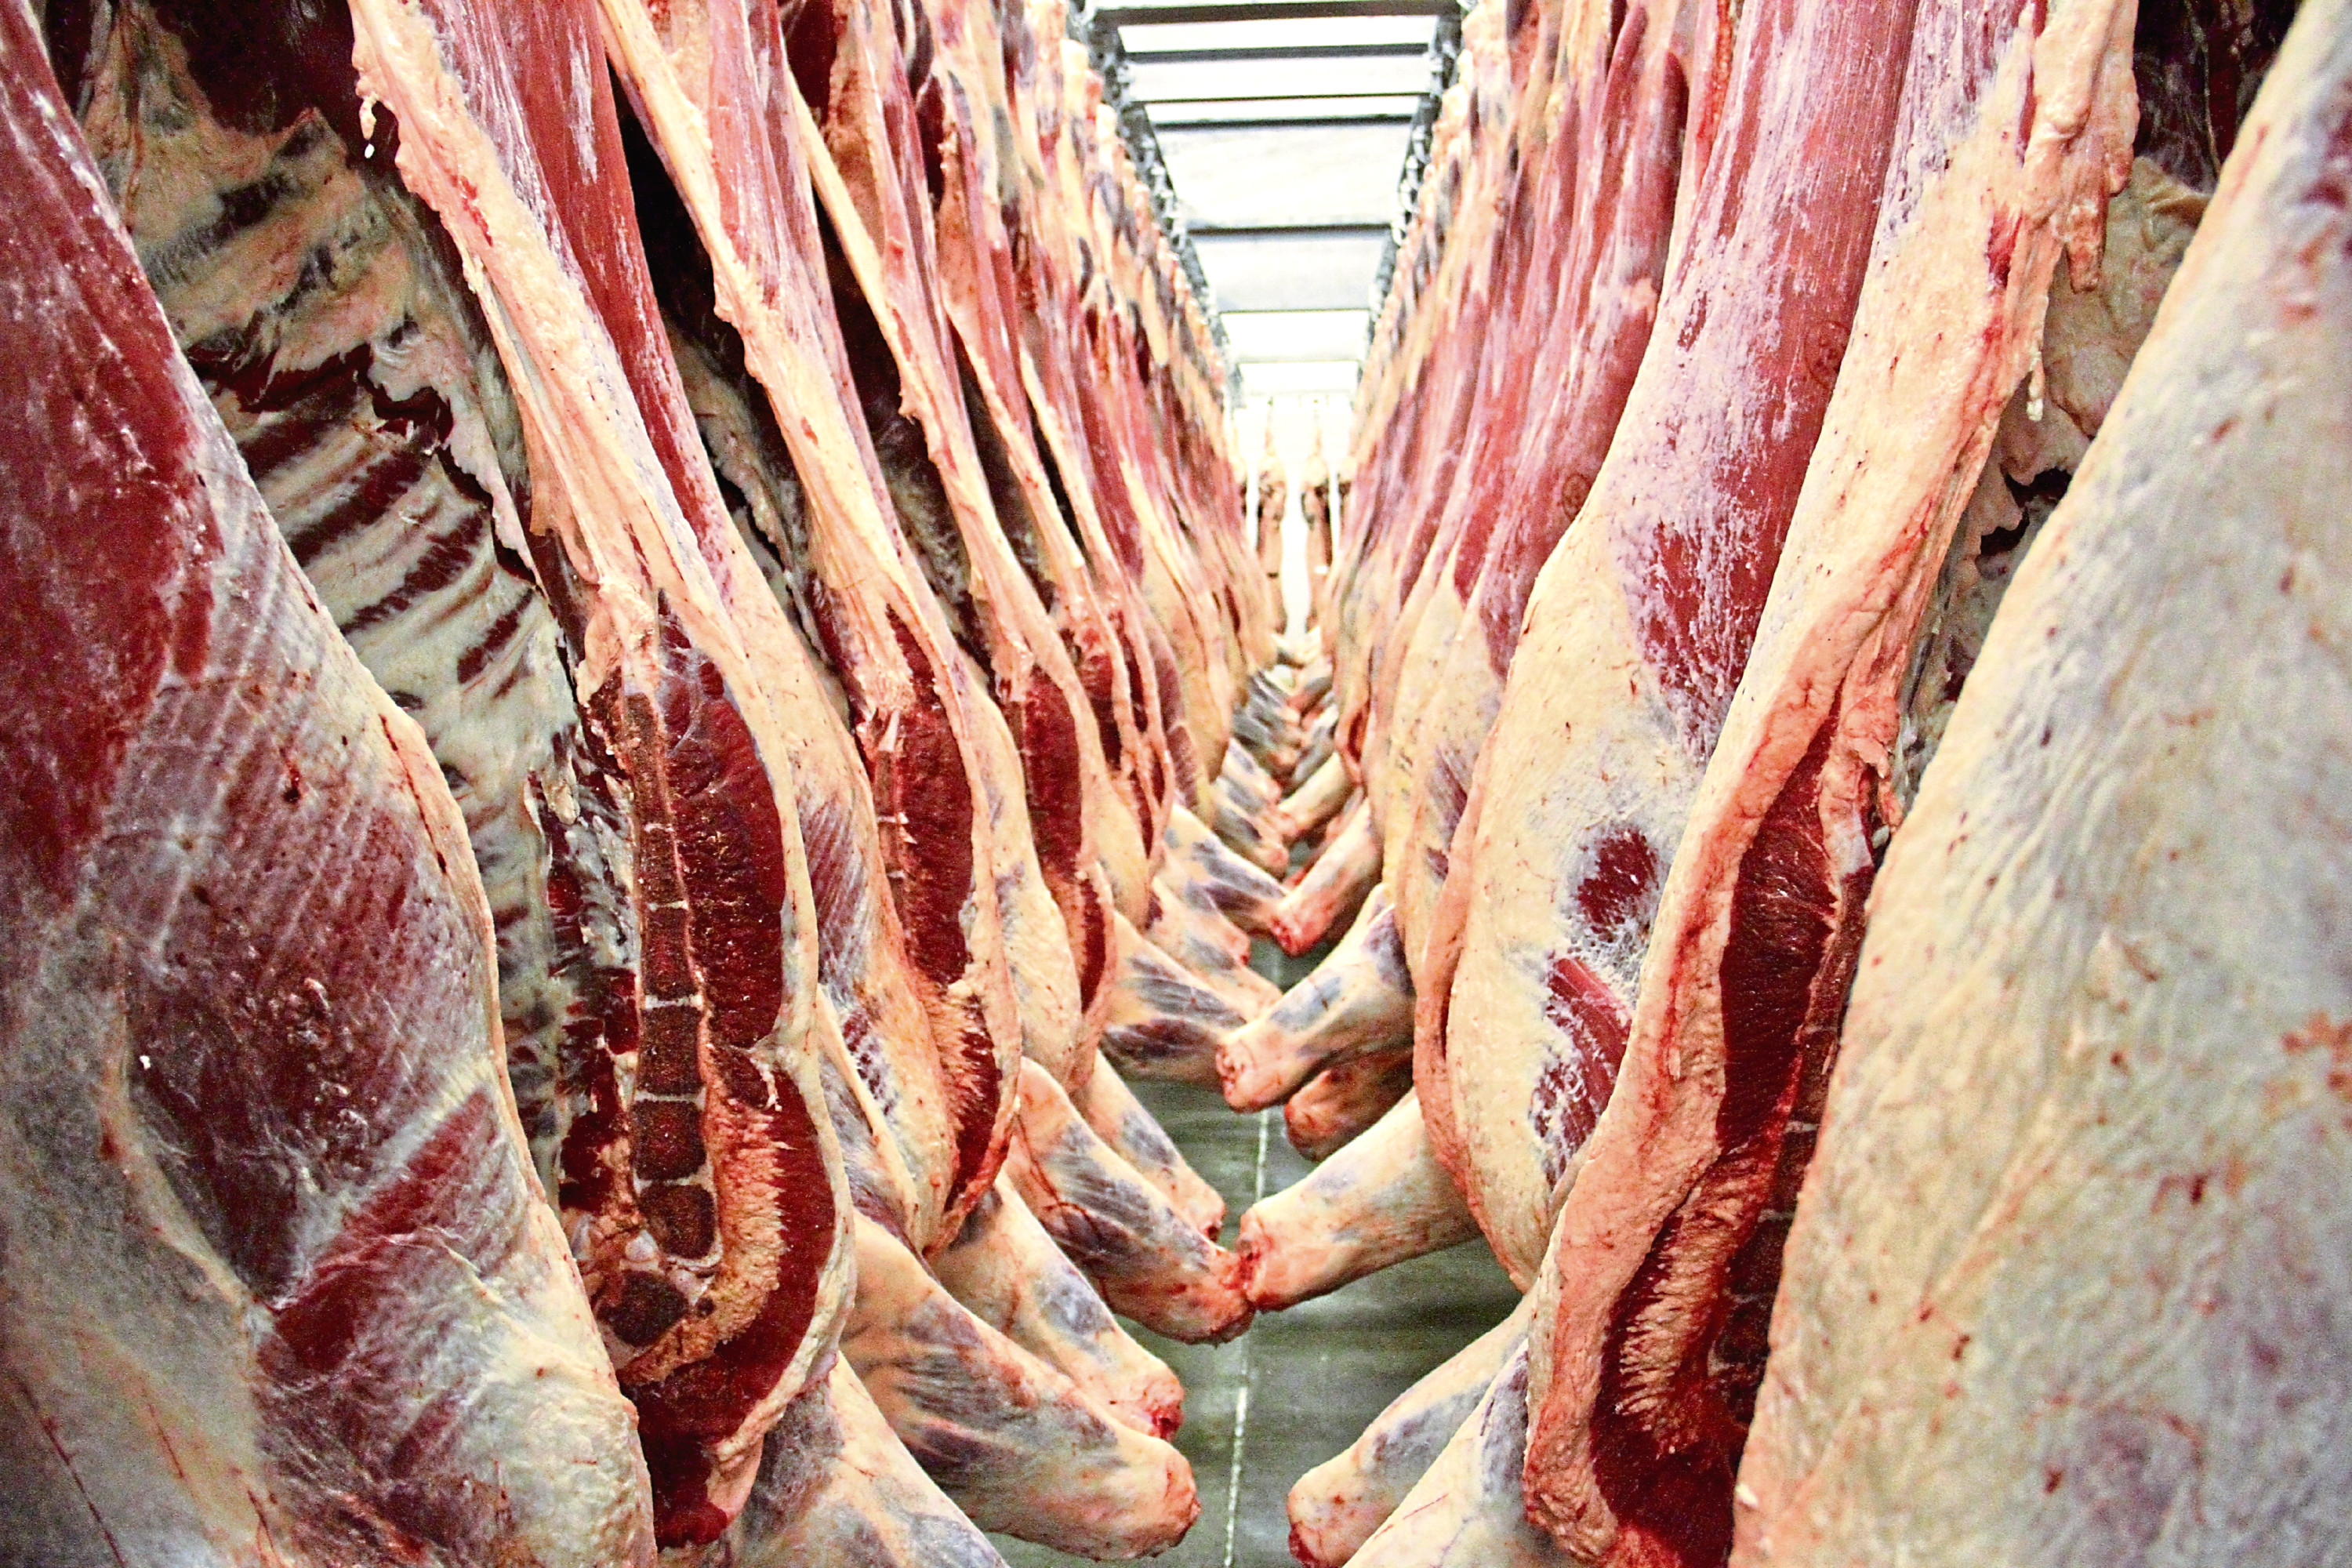 Scotch Beef carcases